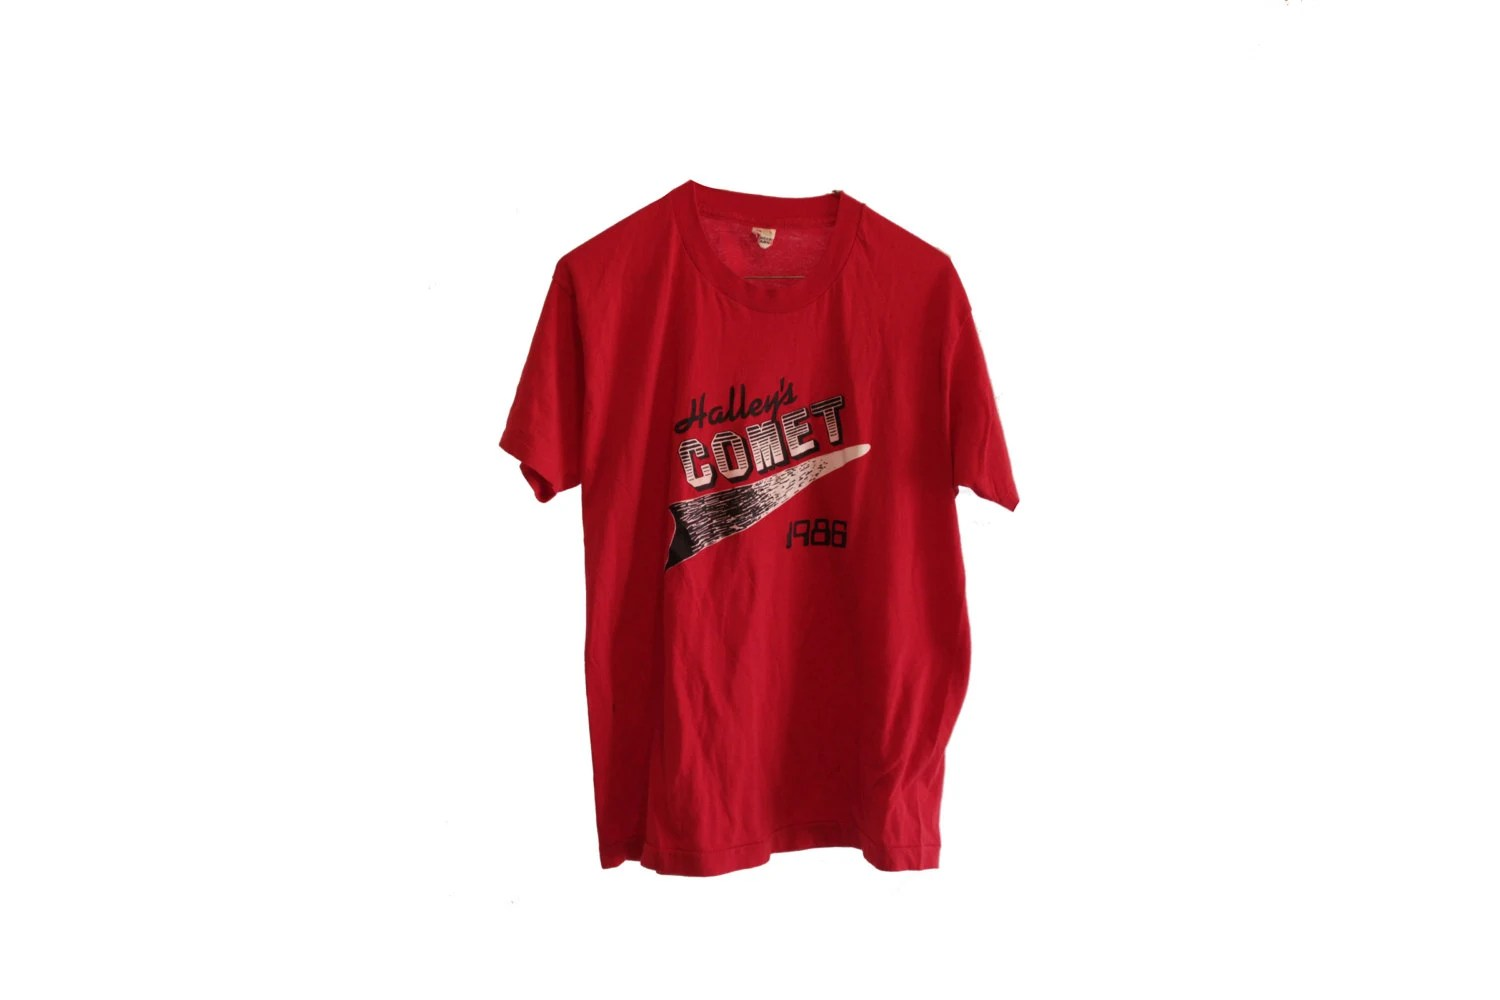 Halley S Comet Vintage T Shirt Red Screen Stars Size